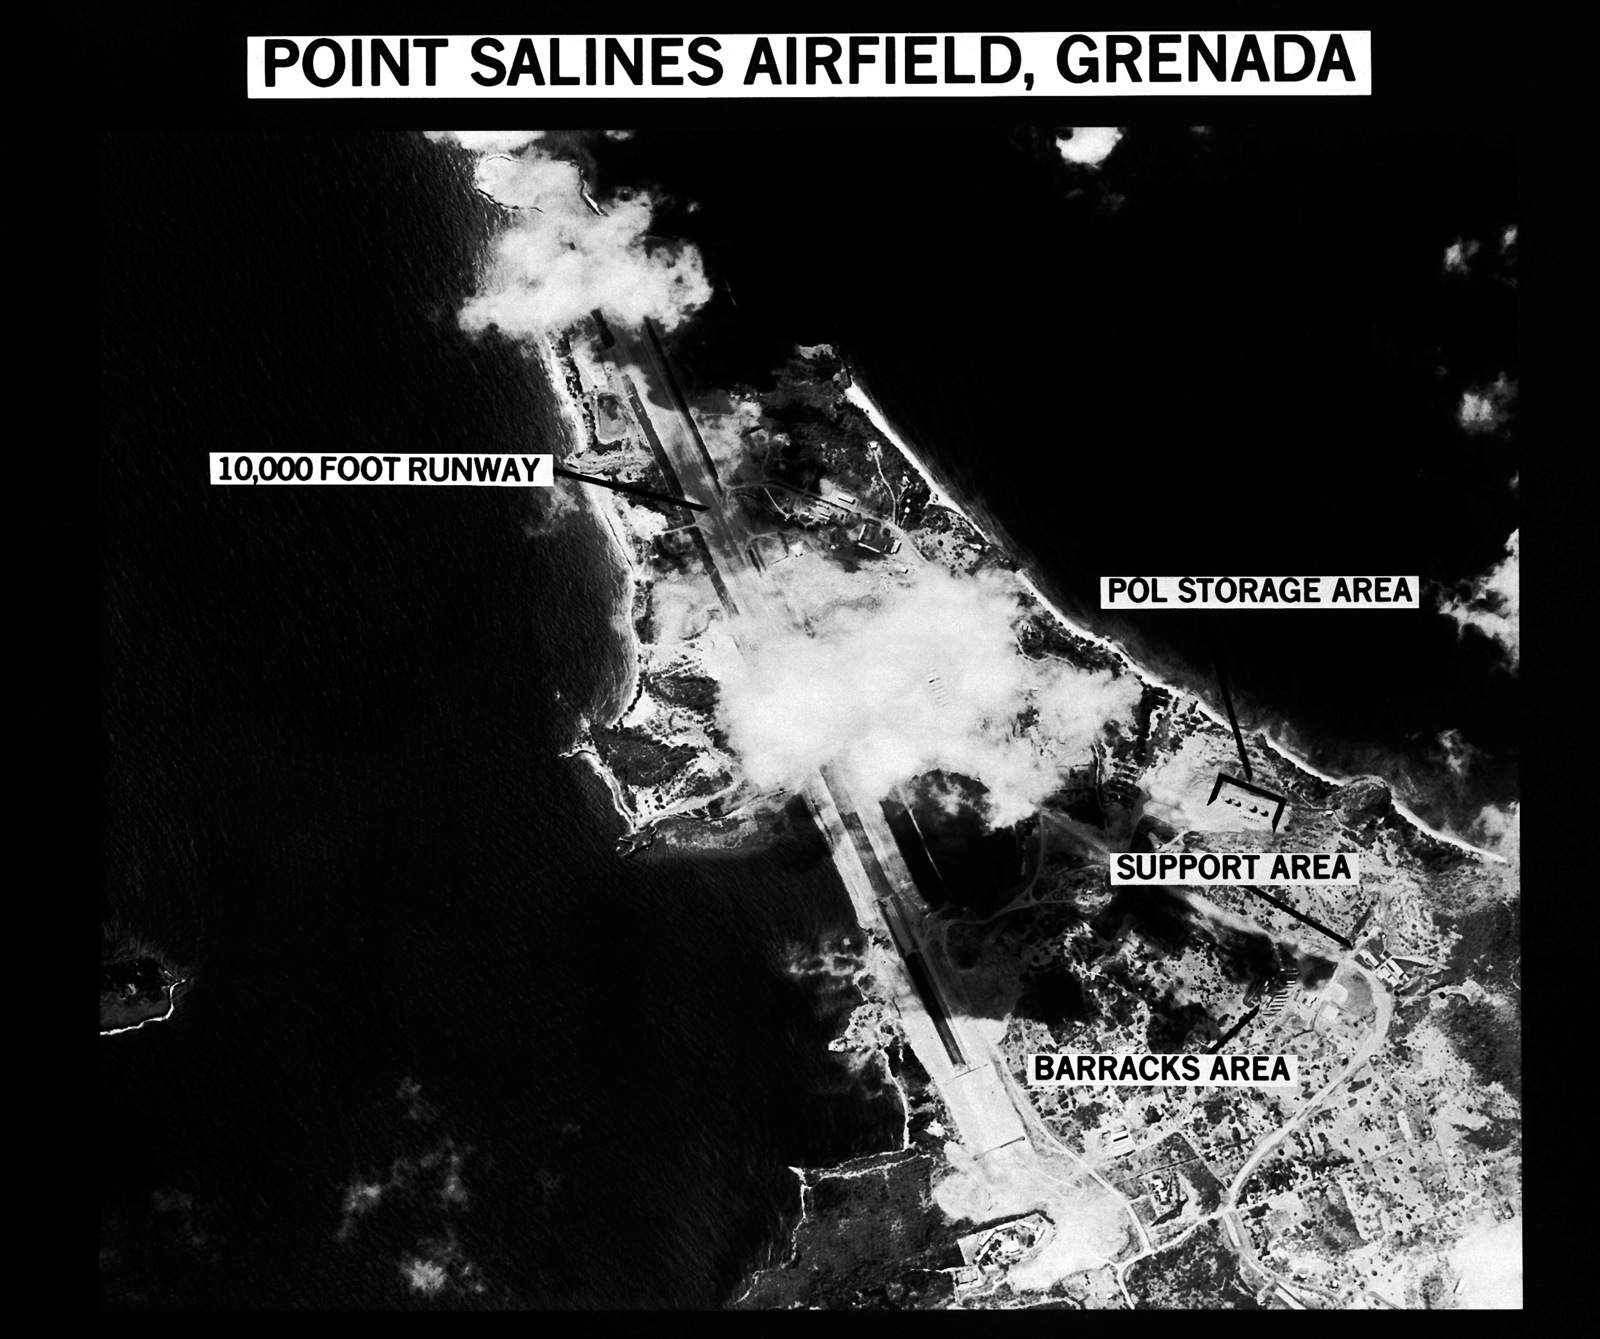 A Map Of Point Salines Airfield  Grenada  With Areas Of